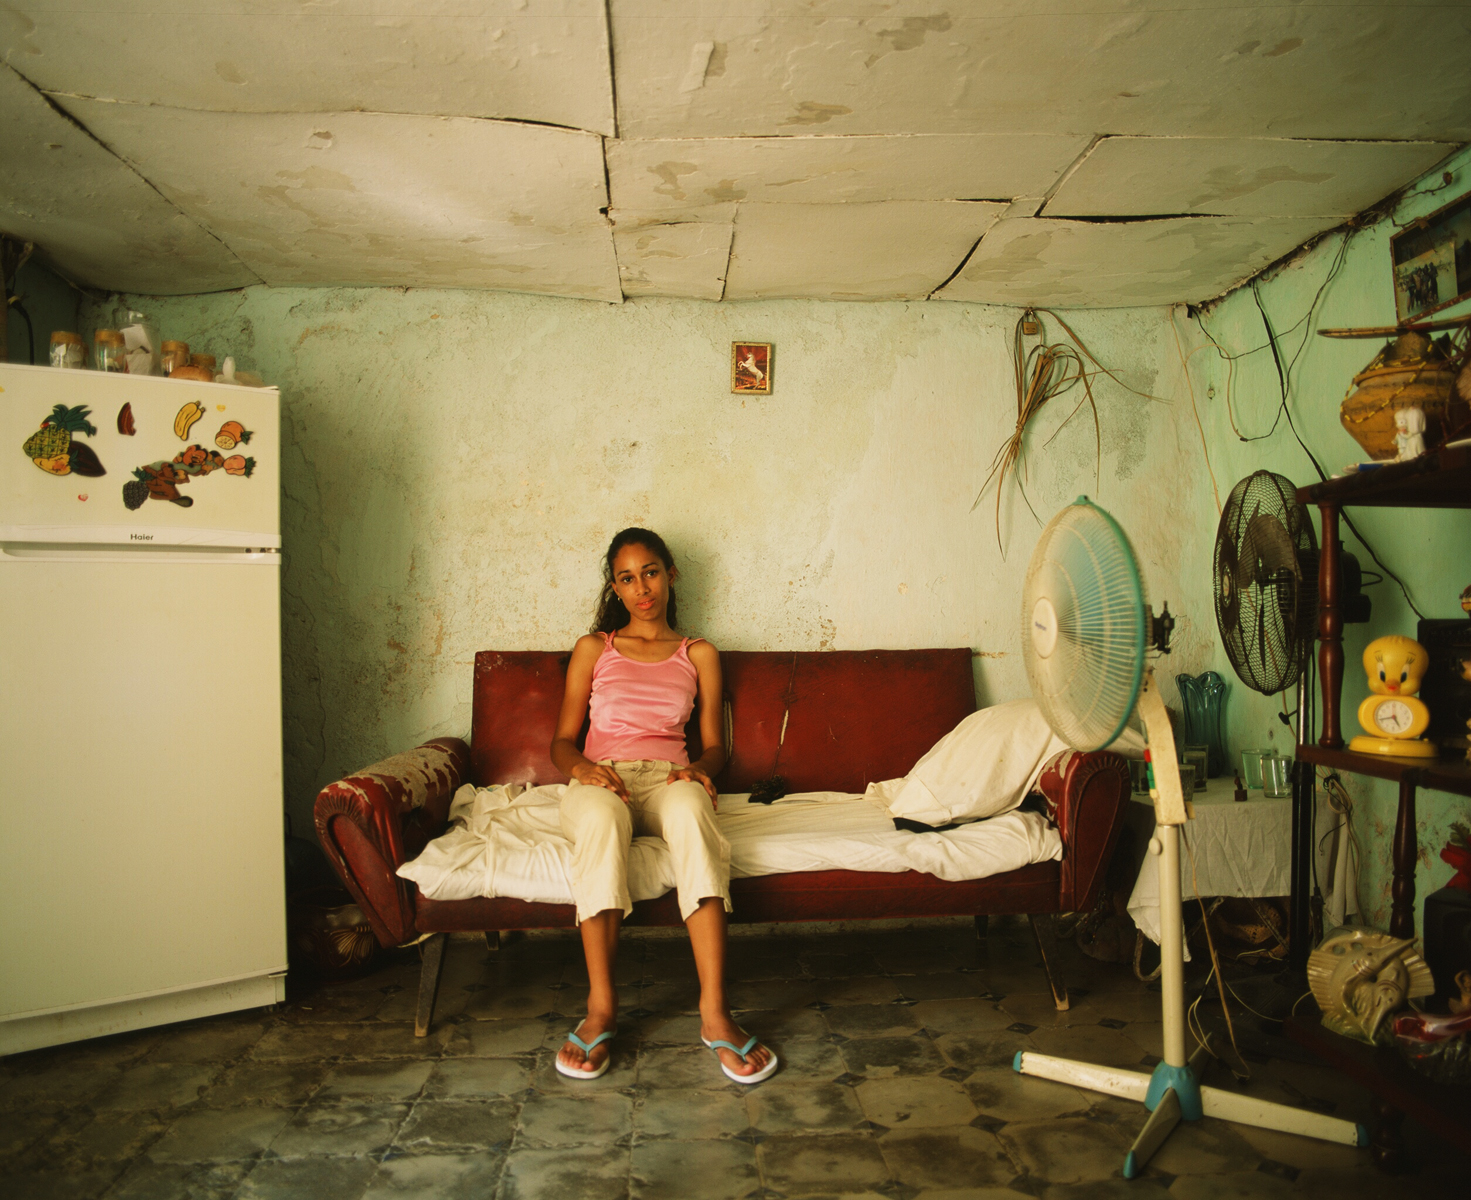 Elsa's granddaughter poses for her portrait in their home. Havana, Cuba